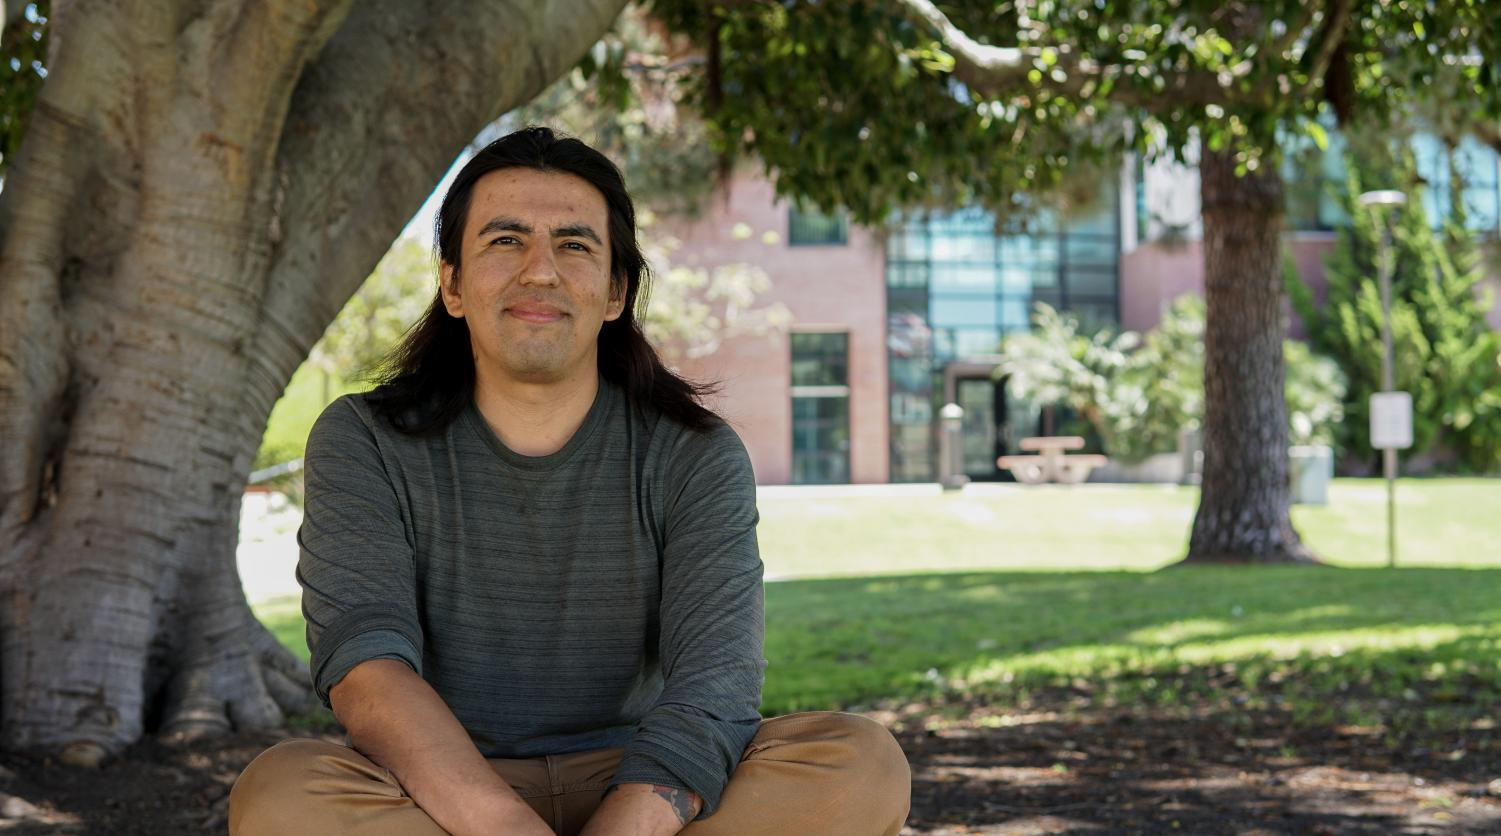 New Editor-in-Chief Sonny Garibay wants to extend the City Times' reach through new digital platforms. By Daivd Ahumada